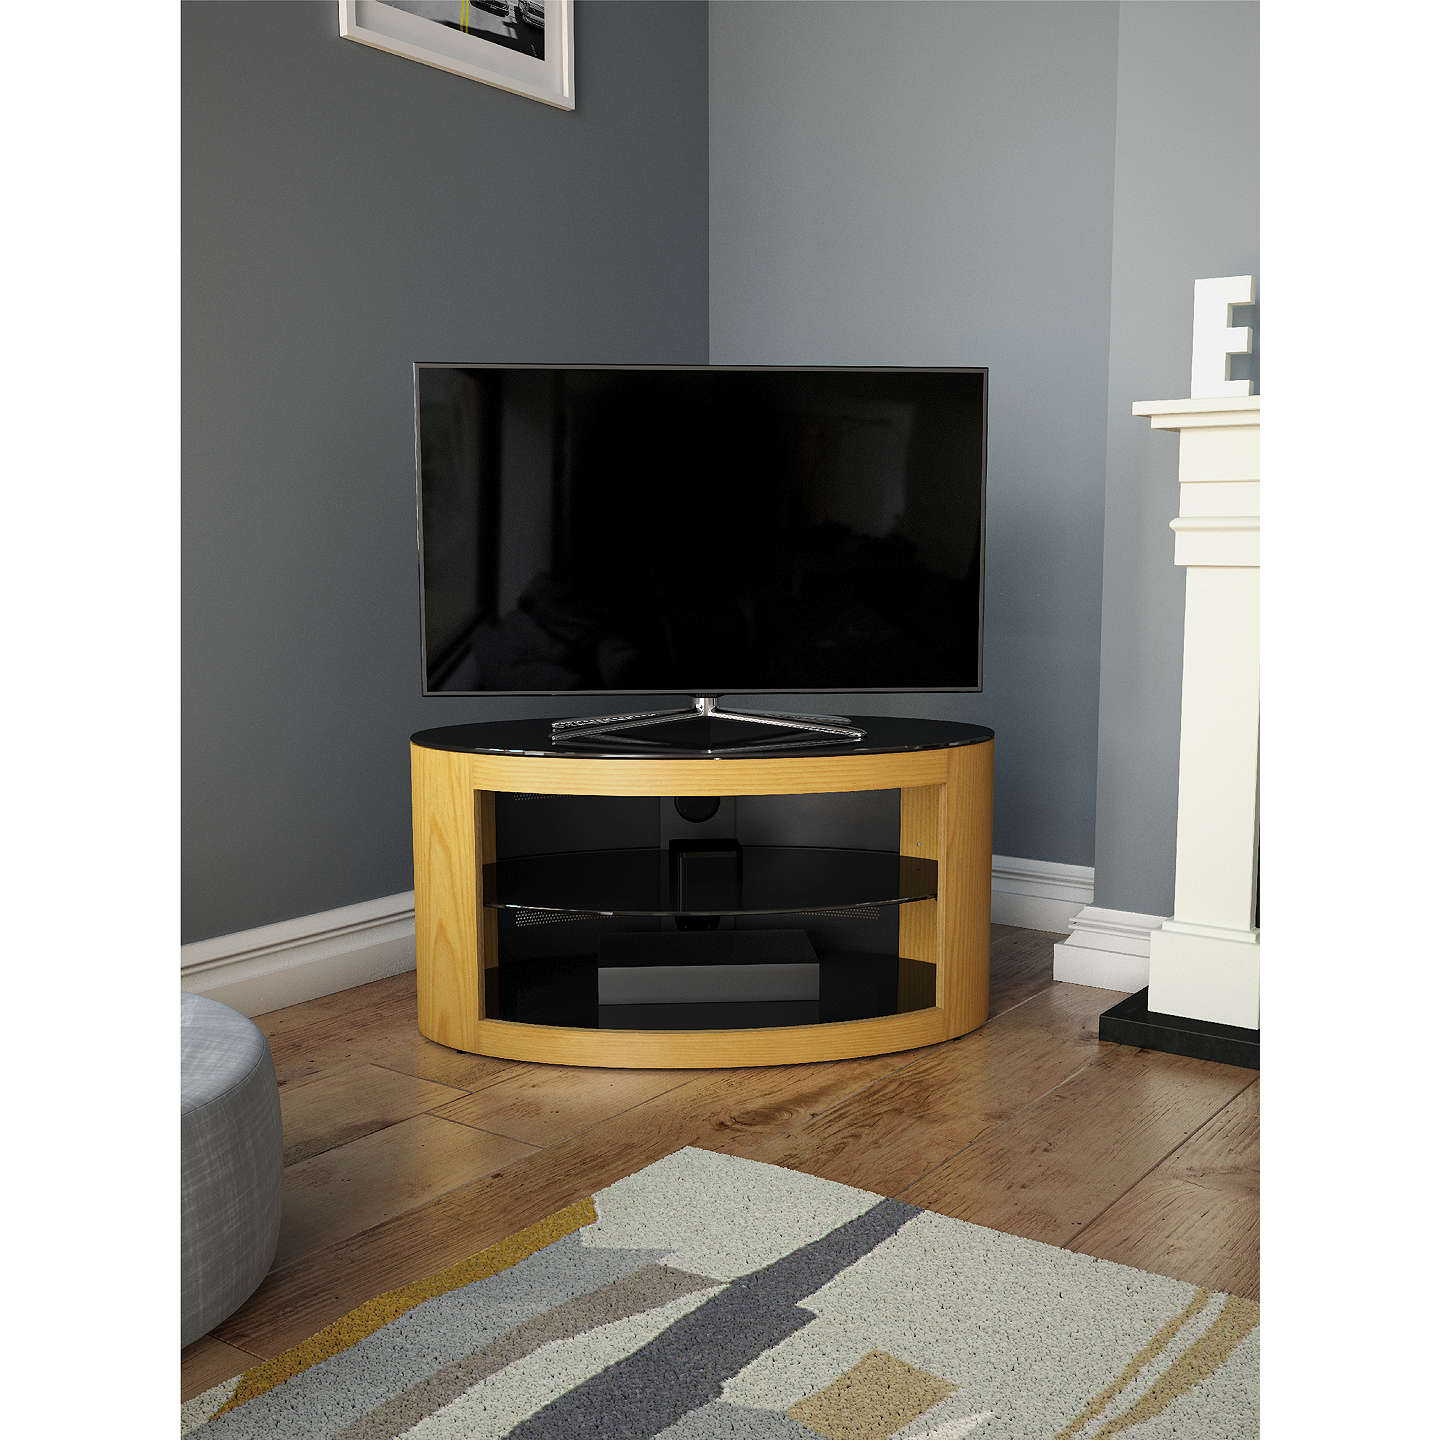 "BuyAVF Affinity Premium Buckingham 800 TV Stand For TVs Up To 40"", Oak Online at johnlewis.com"